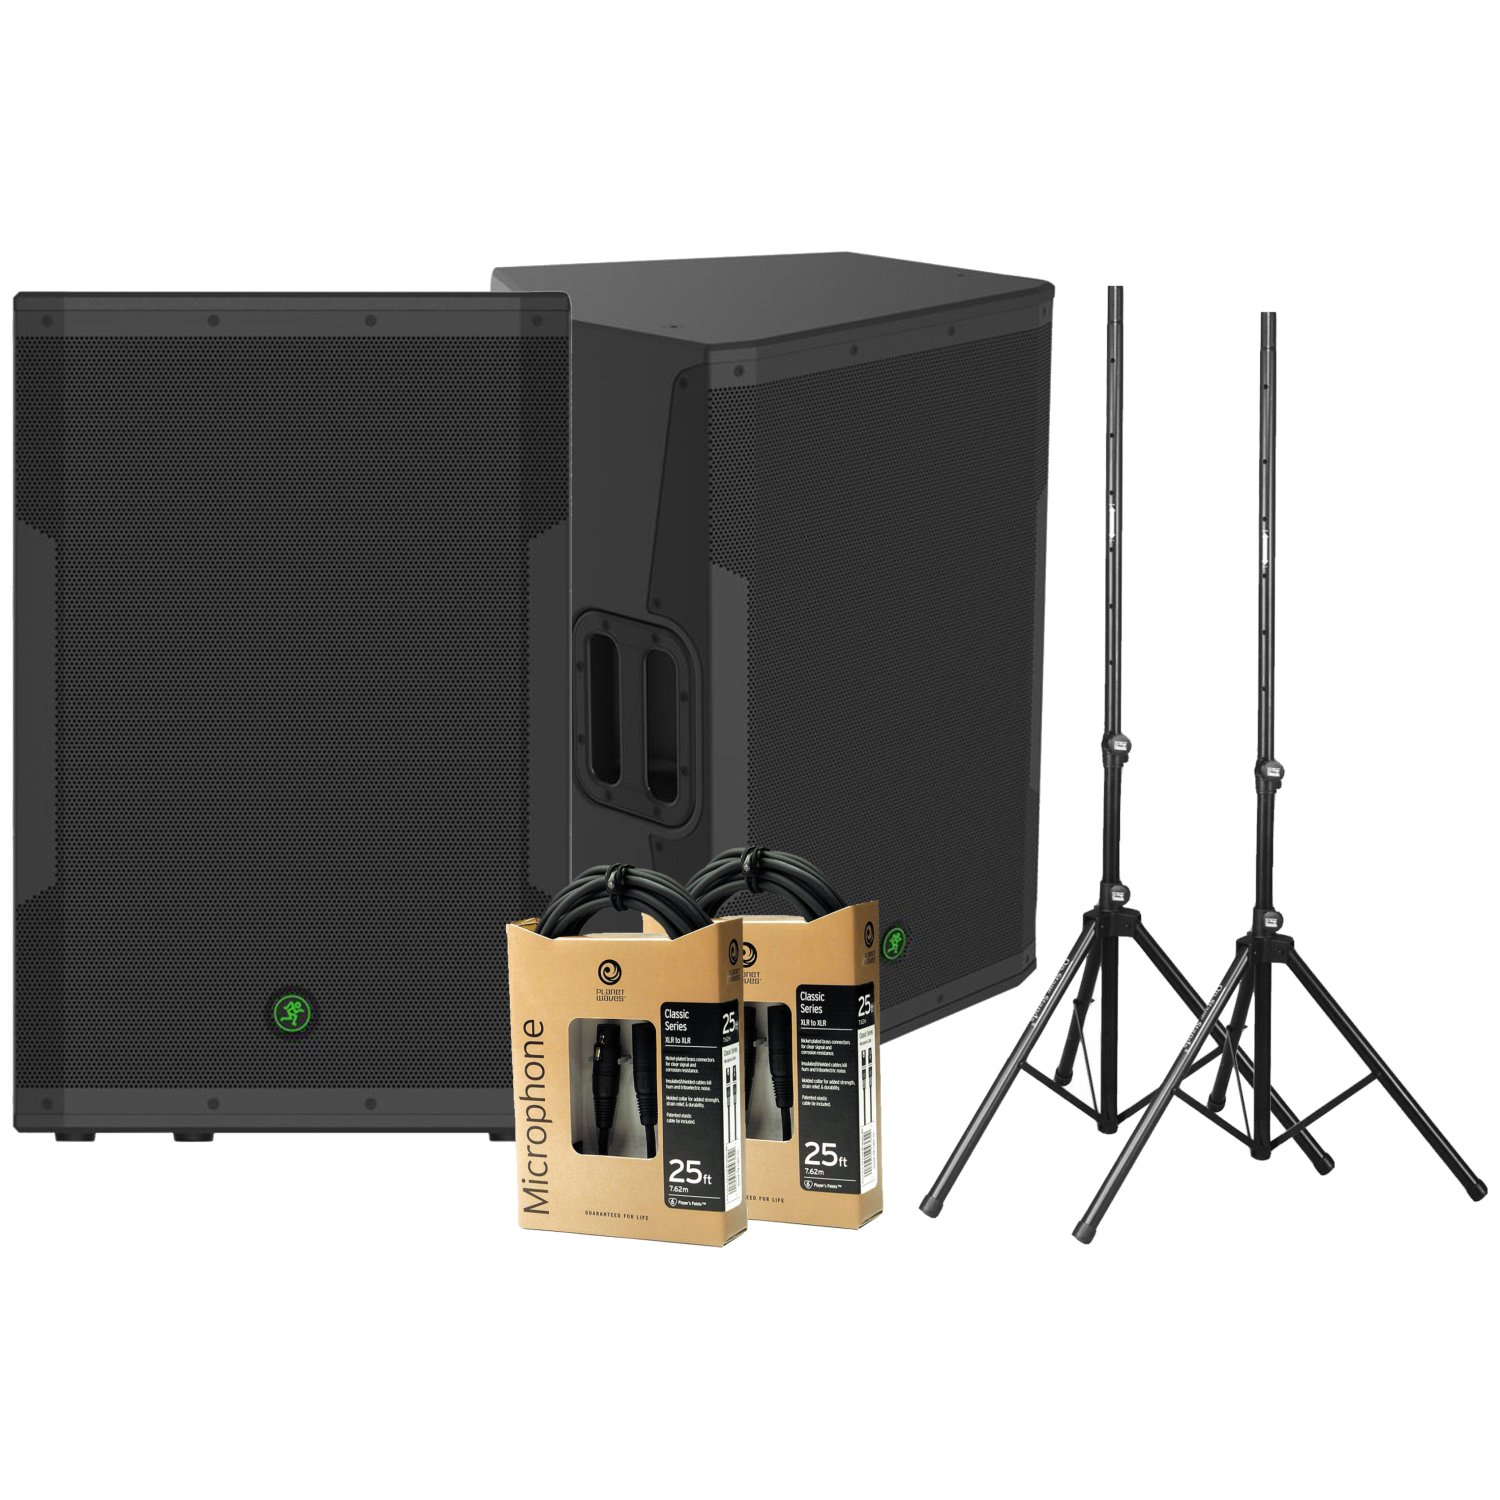 2 Mackie SRM650 Powered Speakers (1600 Watts, 1x15'') w/ 2 Stands and 2 XLR Cables